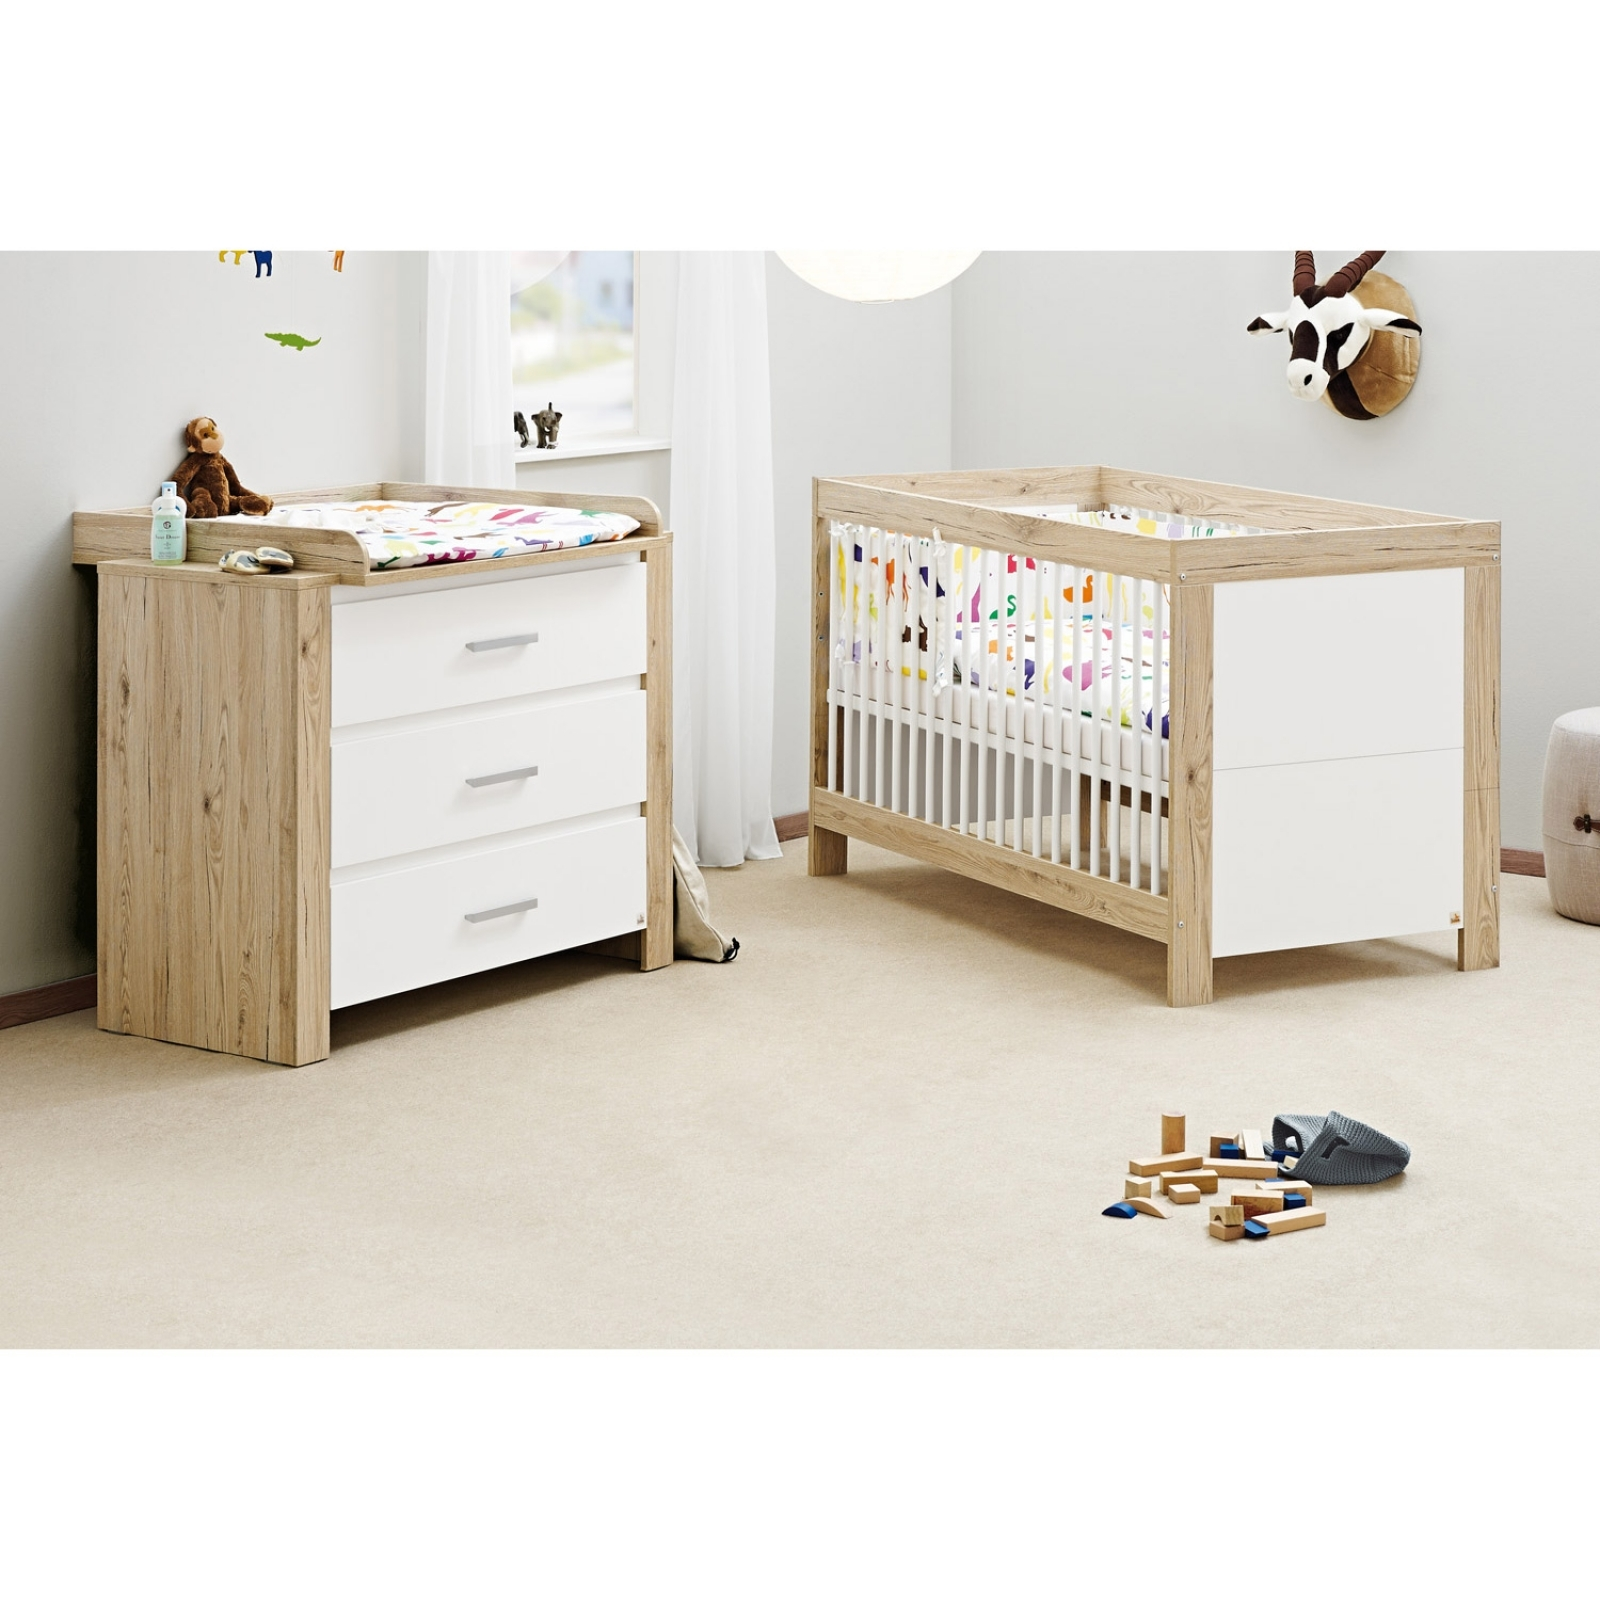 Lit b b volutif et commode langer ch ne massif naturel for Ensemble lit commode bebe